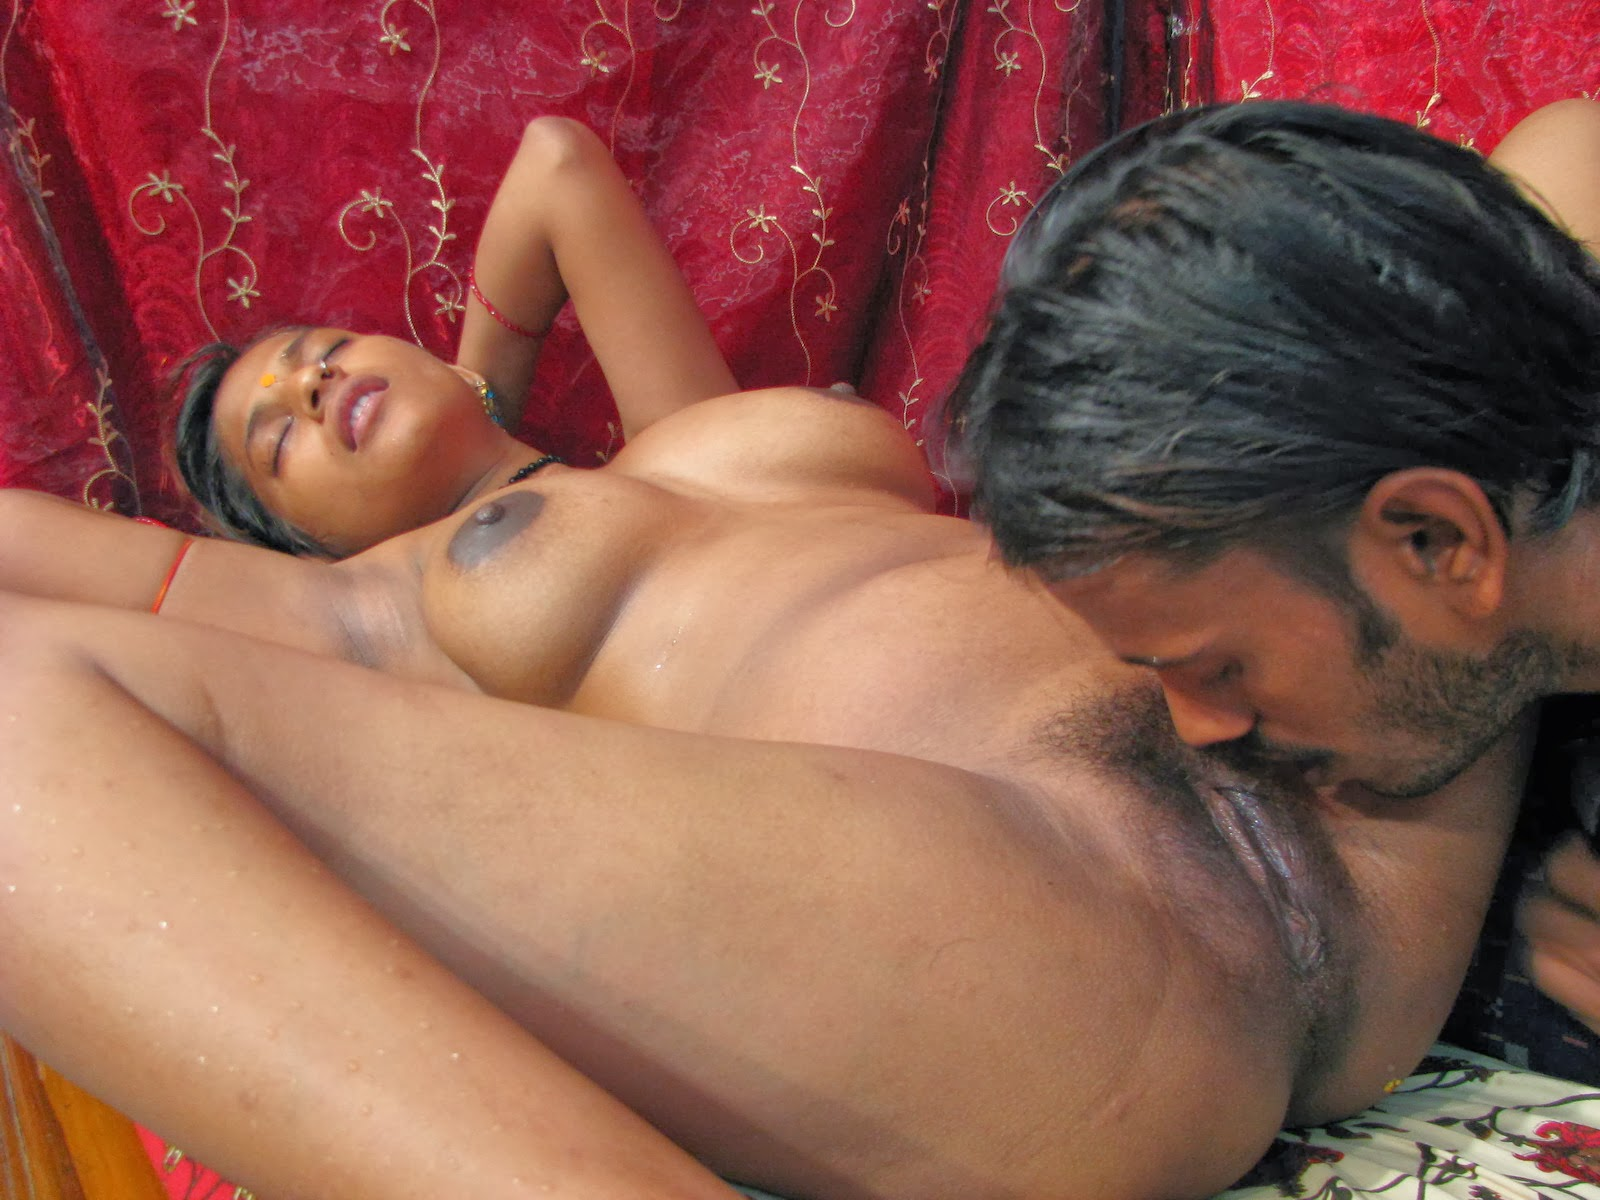 Hot indian aunty photos